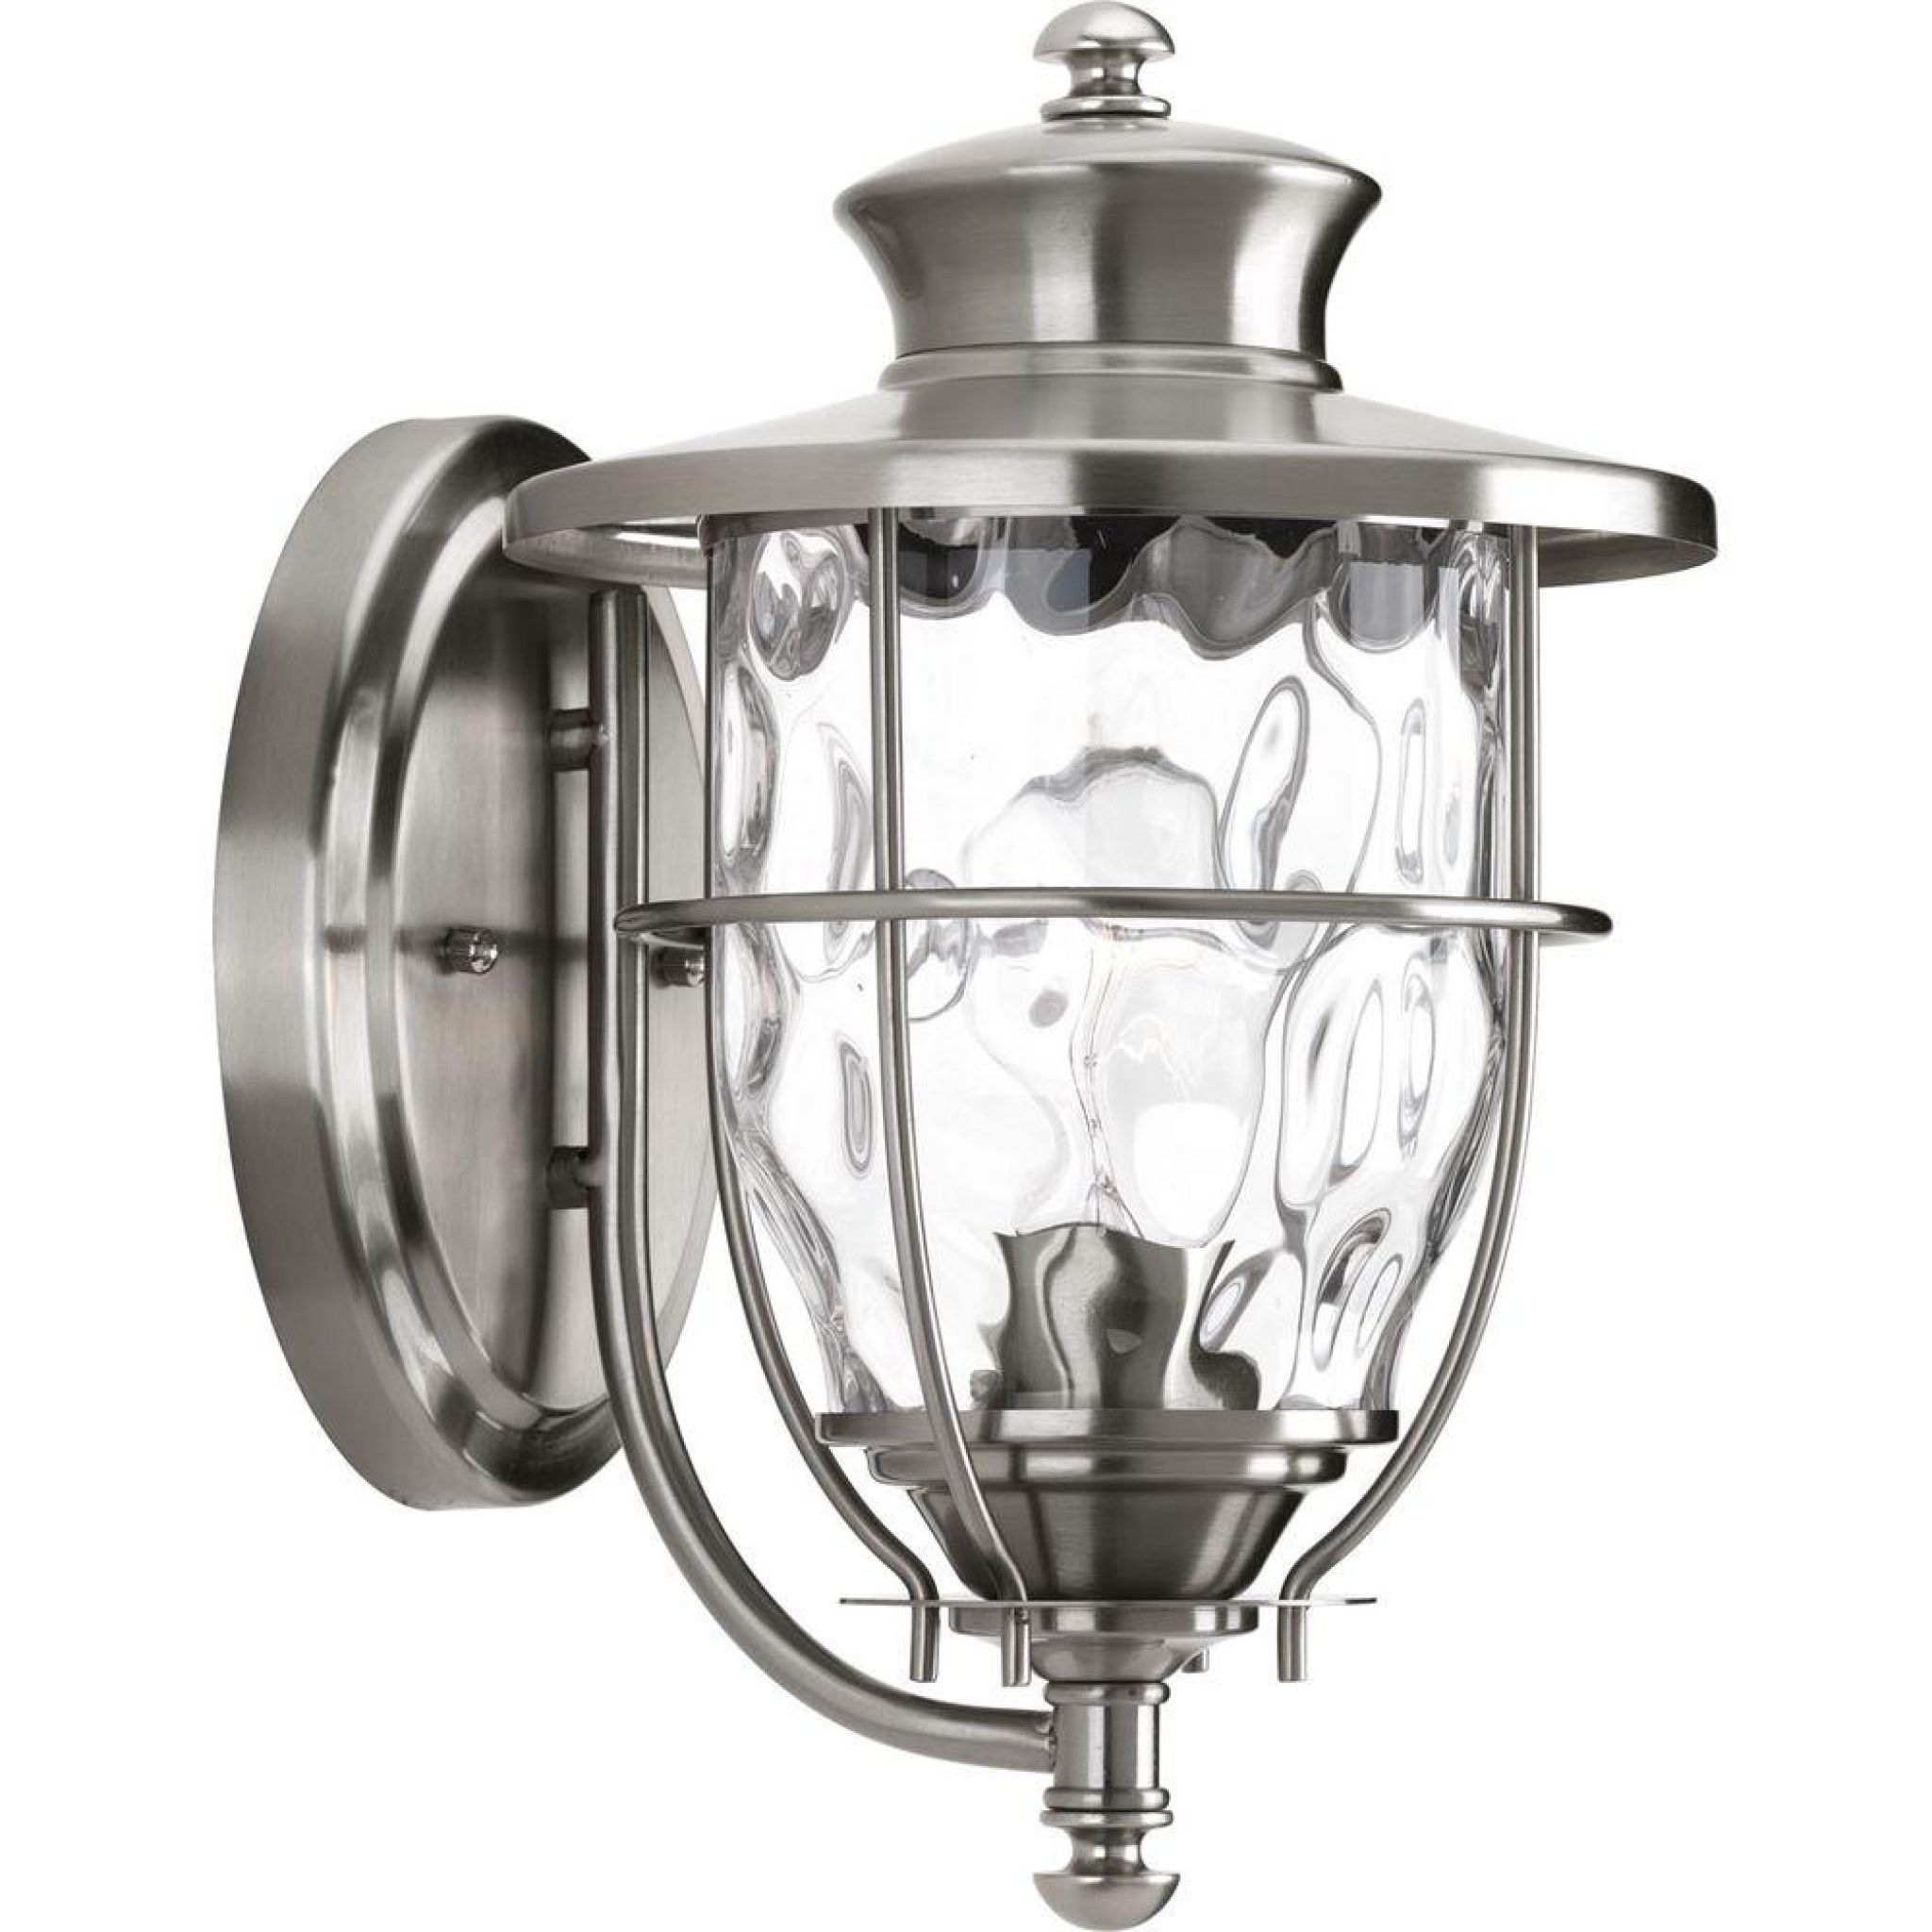 Brushed Nickel Outdoor Lights Favorite Interior Paint Colors Check More At